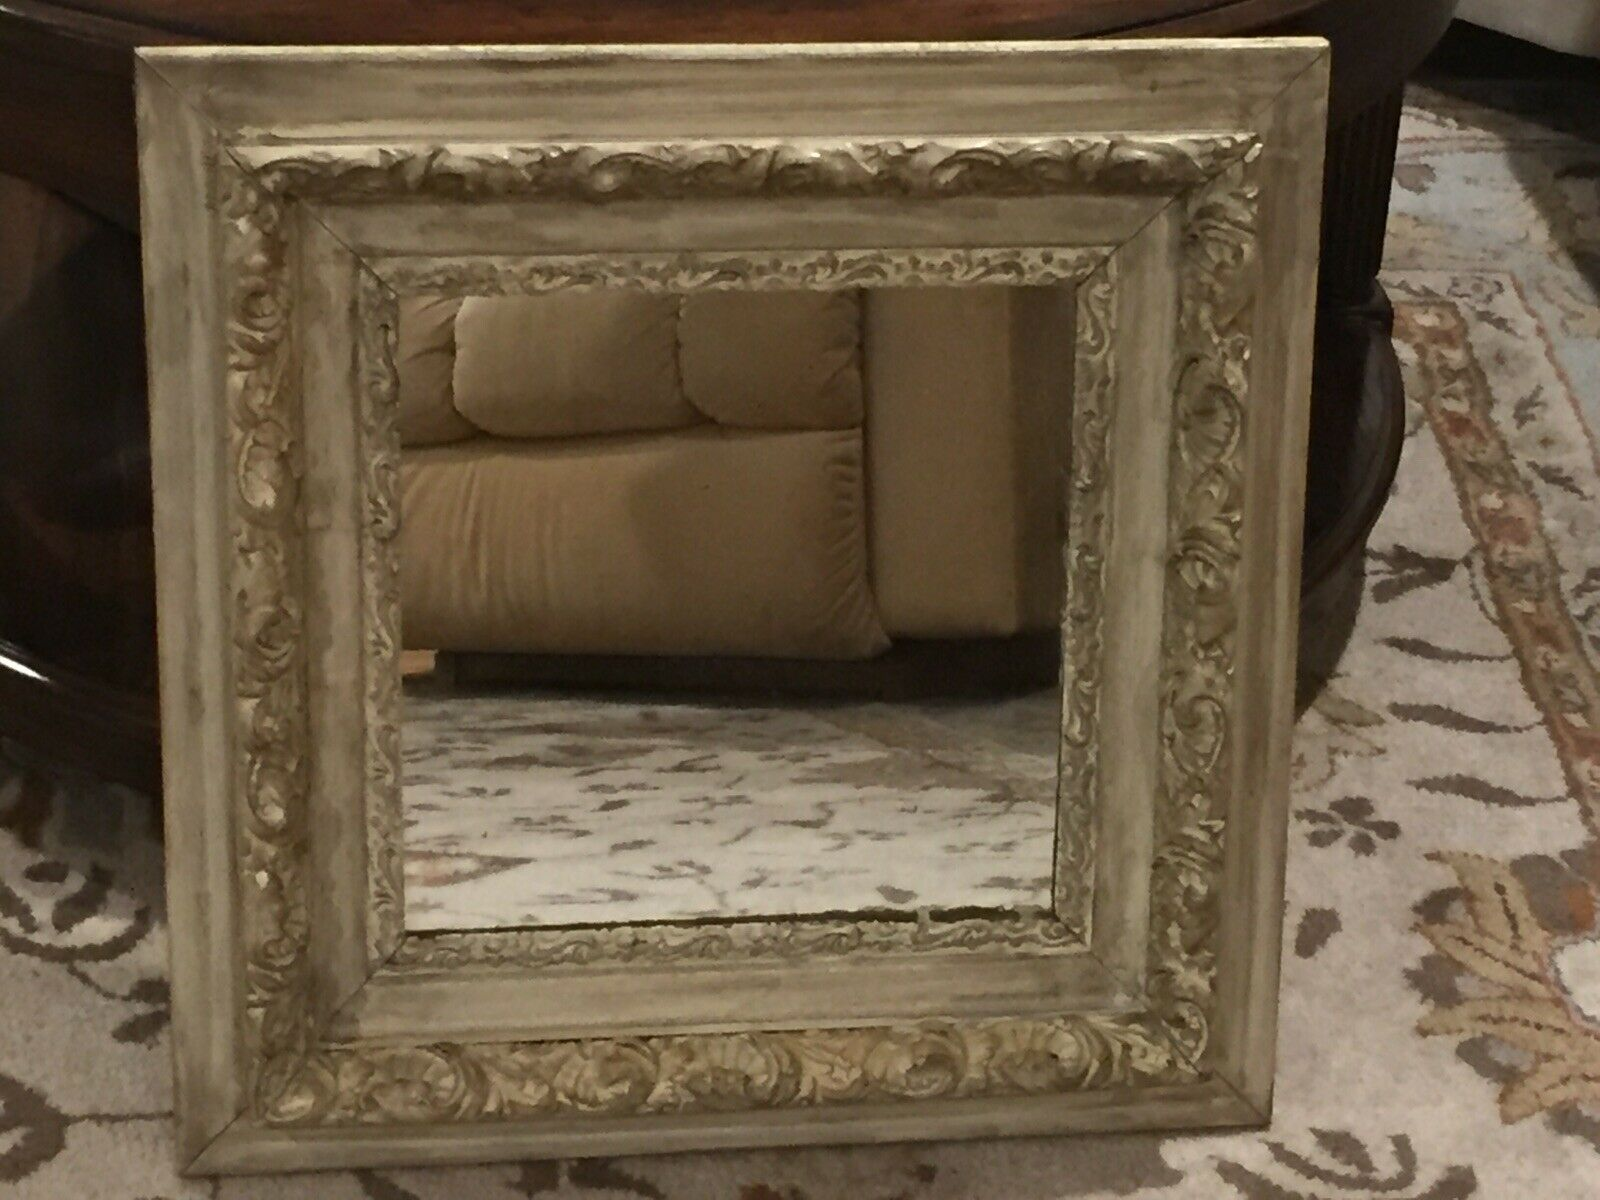 Vintage Style Light Turquoise Wooden Shabby Chic Distressed Wall Mirror Hanging For Sale Online Ebay